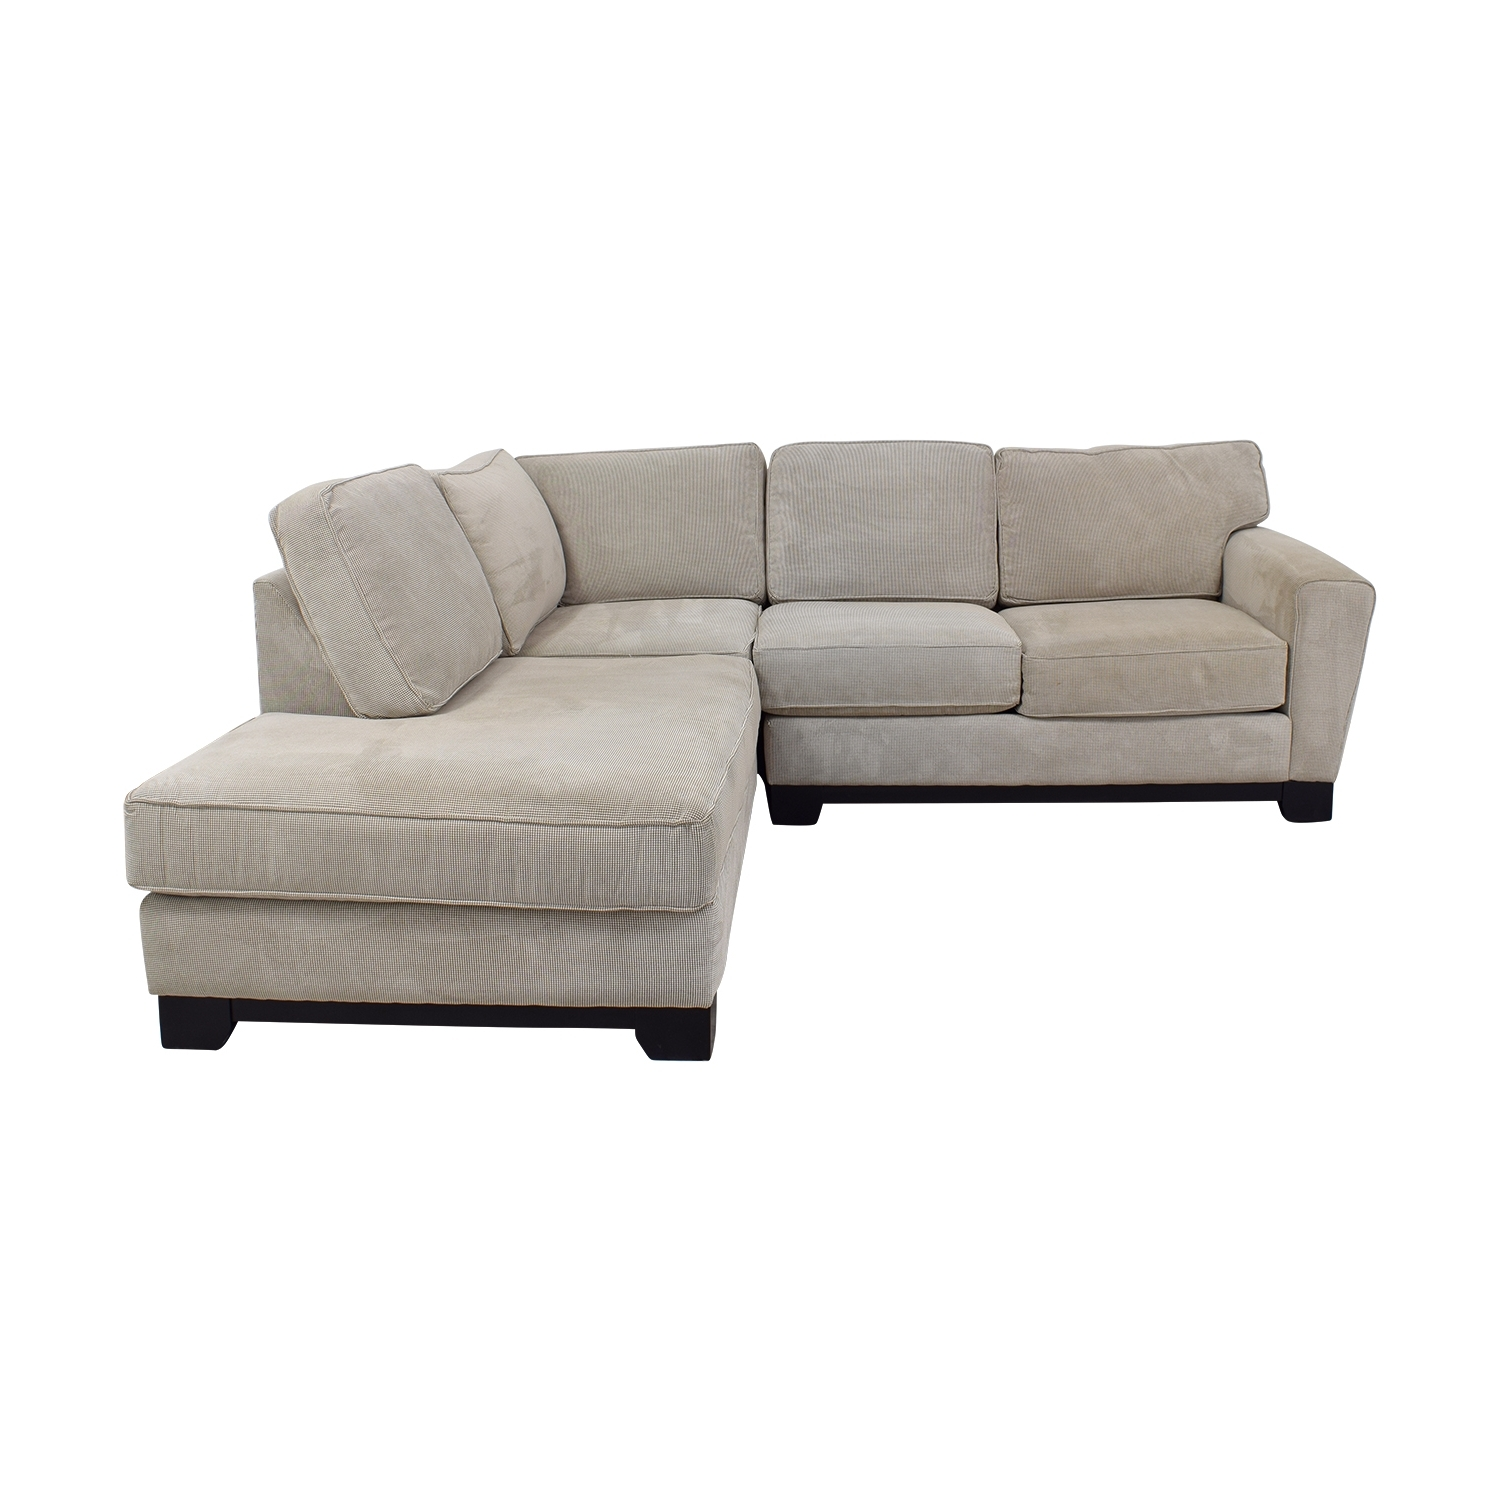 [%80% Off – Jordan's Furniture Jordan's Furniture Beige L Shaped Within Newest Jordans Sectional Sofas|Jordans Sectional Sofas Within Most Recent 80% Off – Jordan's Furniture Jordan's Furniture Beige L Shaped|Well Liked Jordans Sectional Sofas Throughout 80% Off – Jordan's Furniture Jordan's Furniture Beige L Shaped|Best And Newest 80% Off – Jordan's Furniture Jordan's Furniture Beige L Shaped For Jordans Sectional Sofas%] (View 5 of 15)